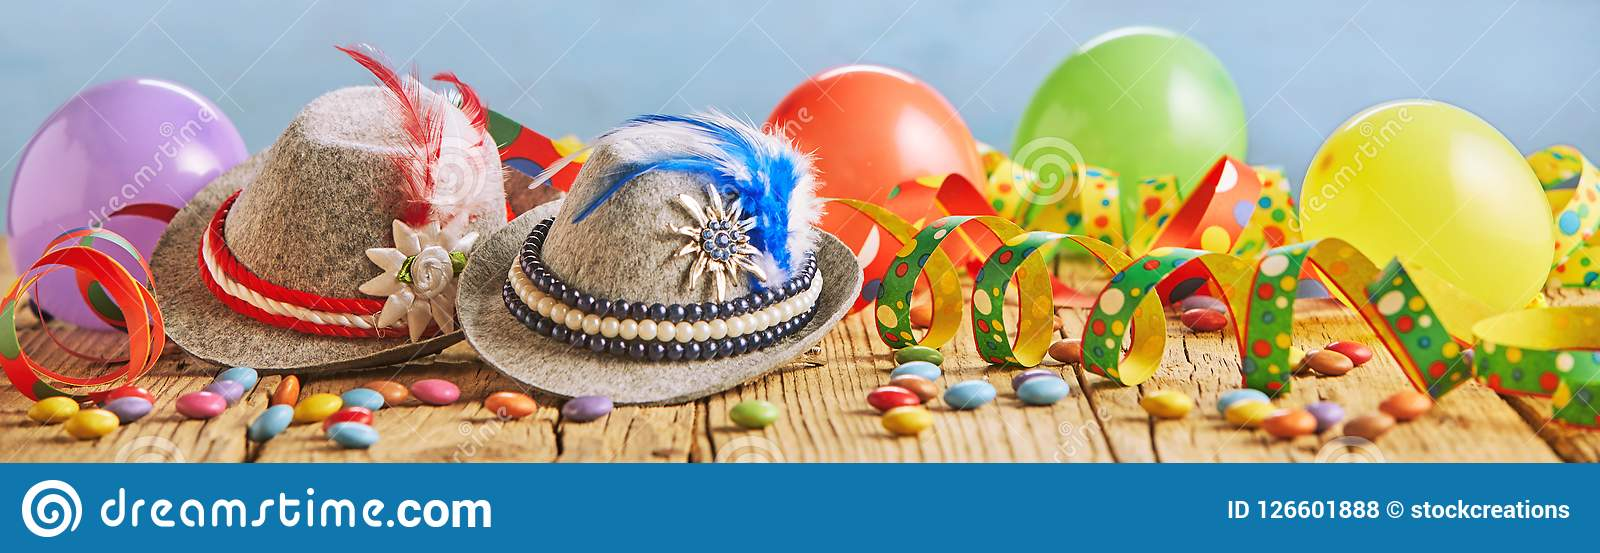 Colorful wide panorama banner with party balloons